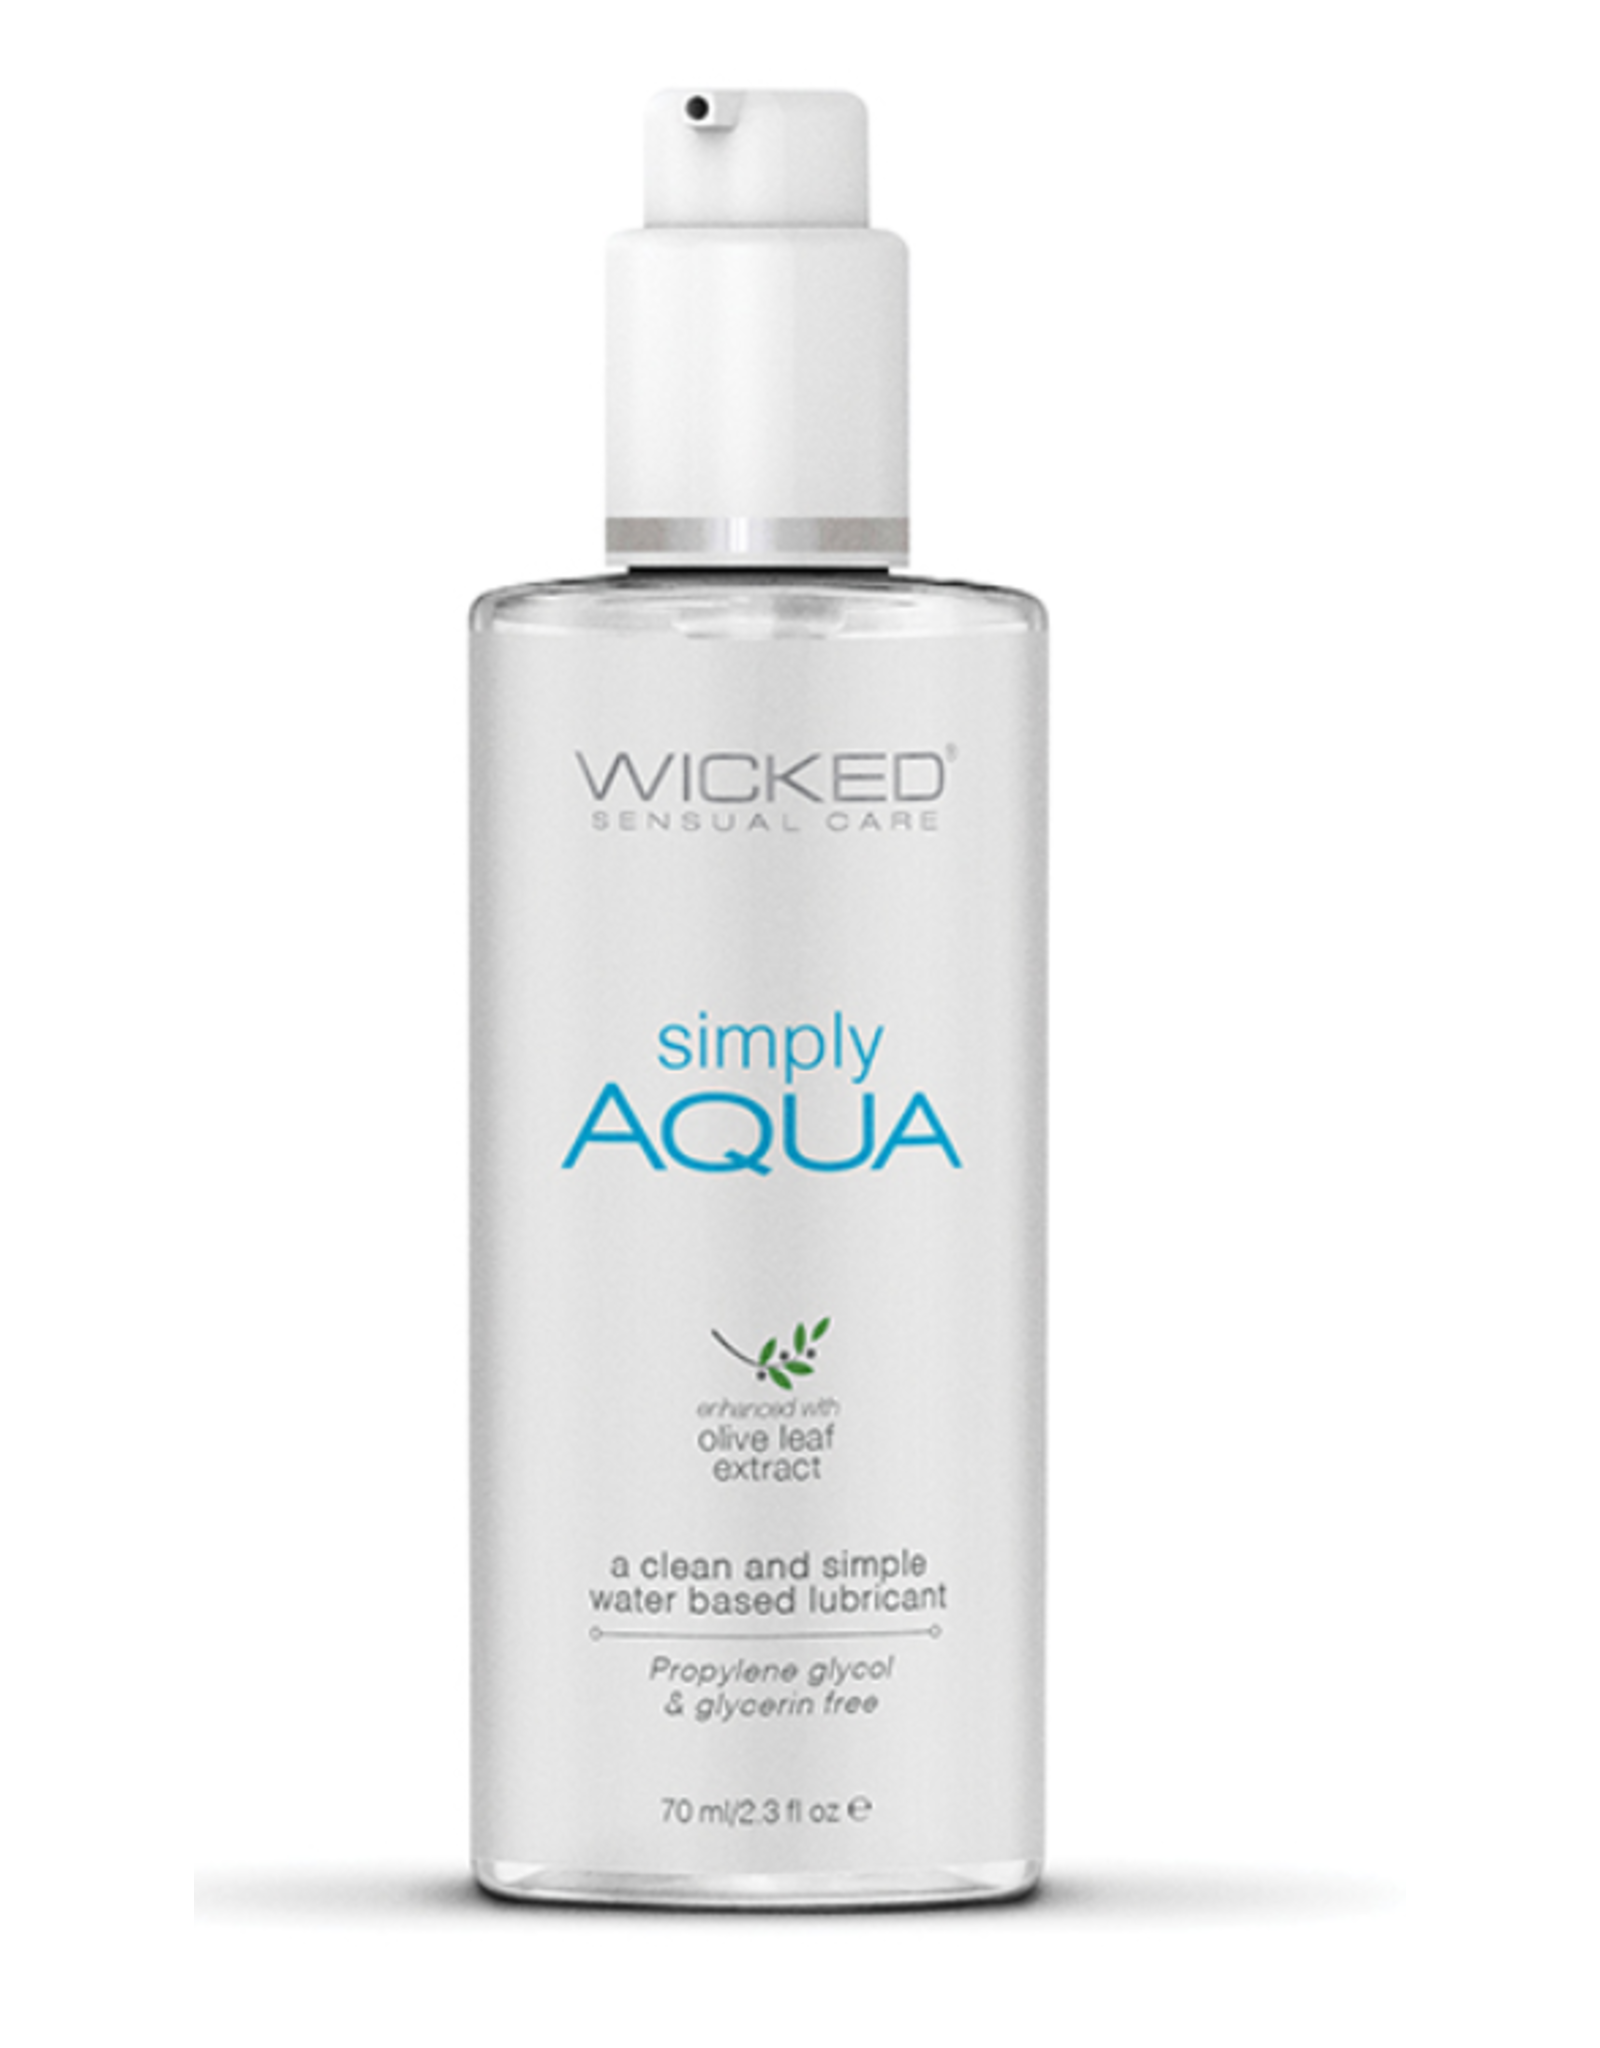 Wicked Sensual Care Simply Aqua Water Based Lubricant - 2.3 oz